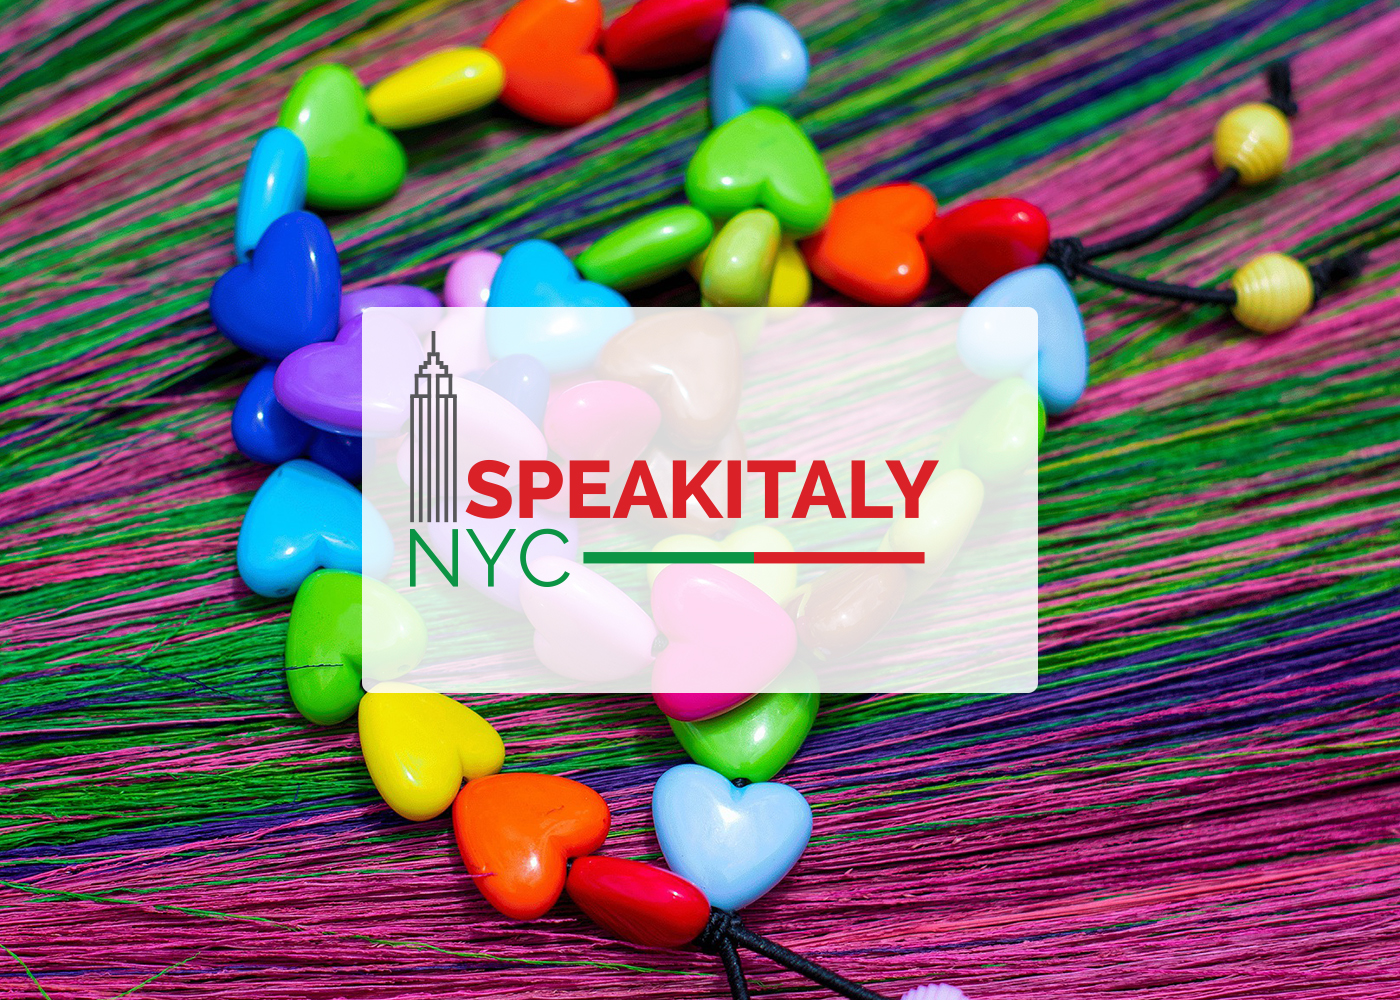 Summer Necklaces Workshop at Speakitaly NYC